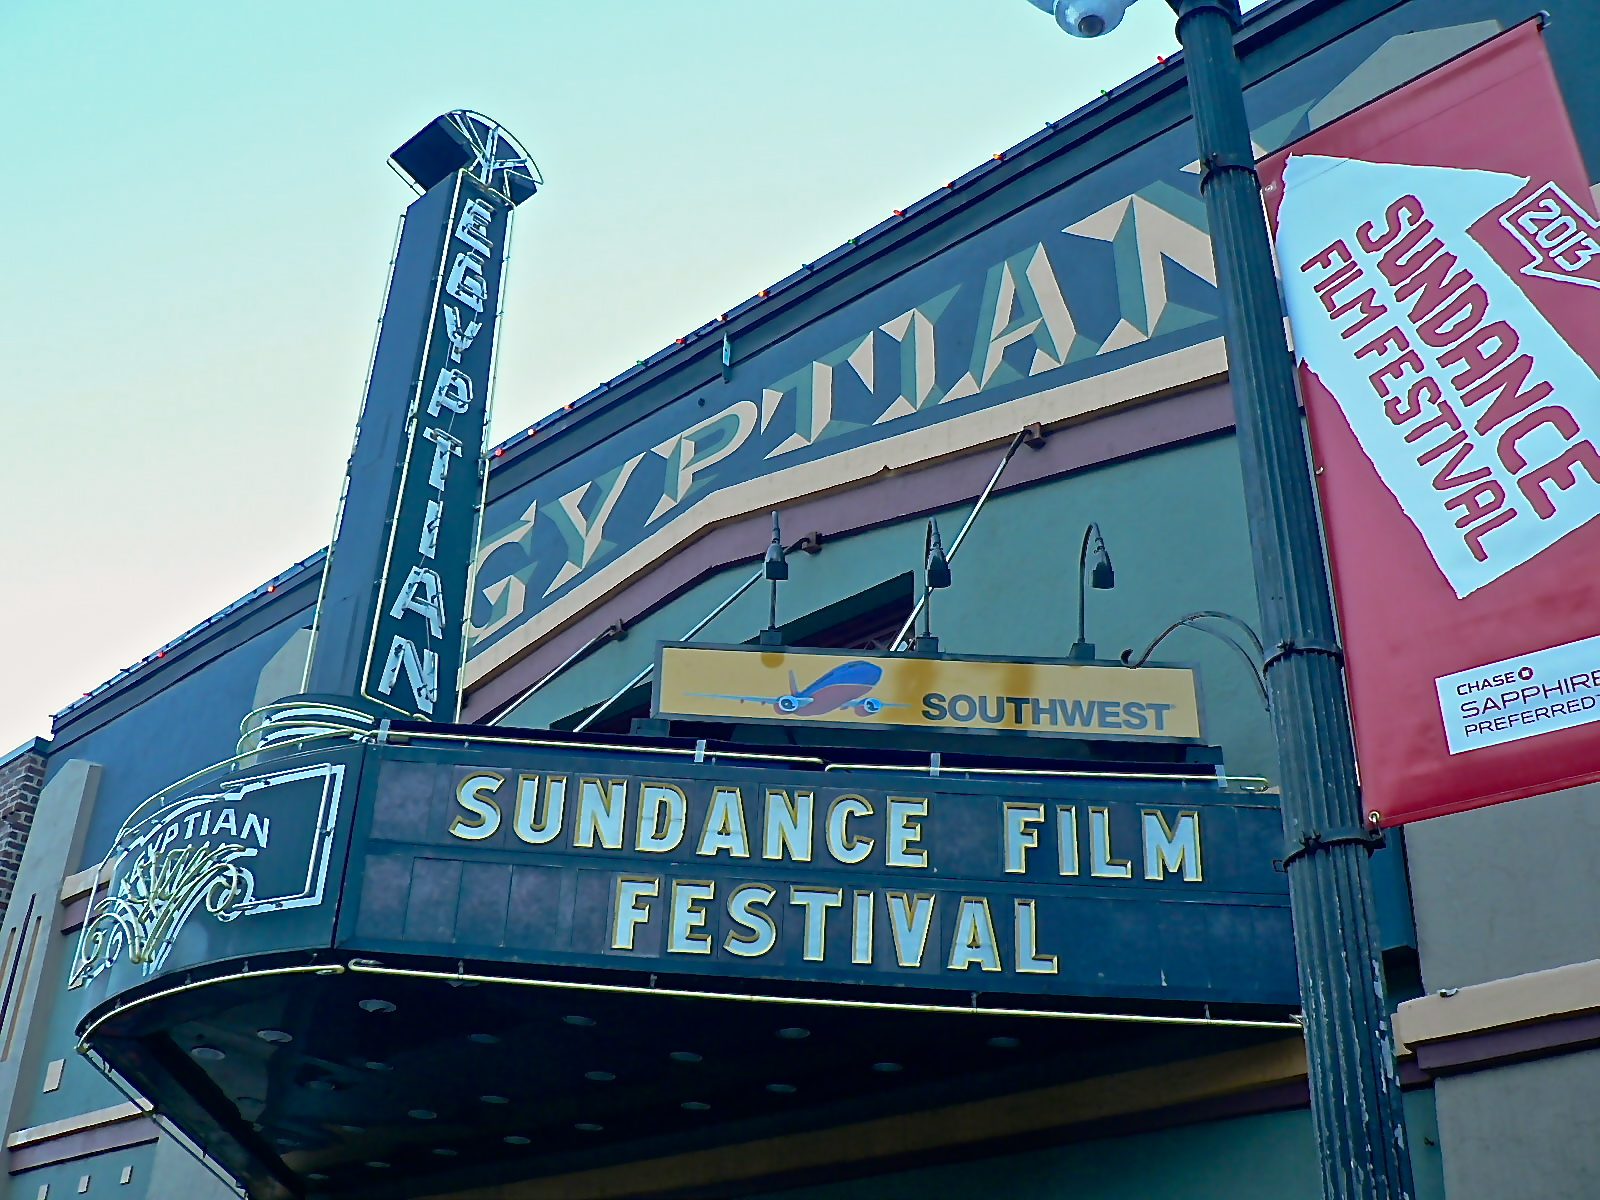 The Egyptian Theatre is the landmark venue of the Sundance Film Festival